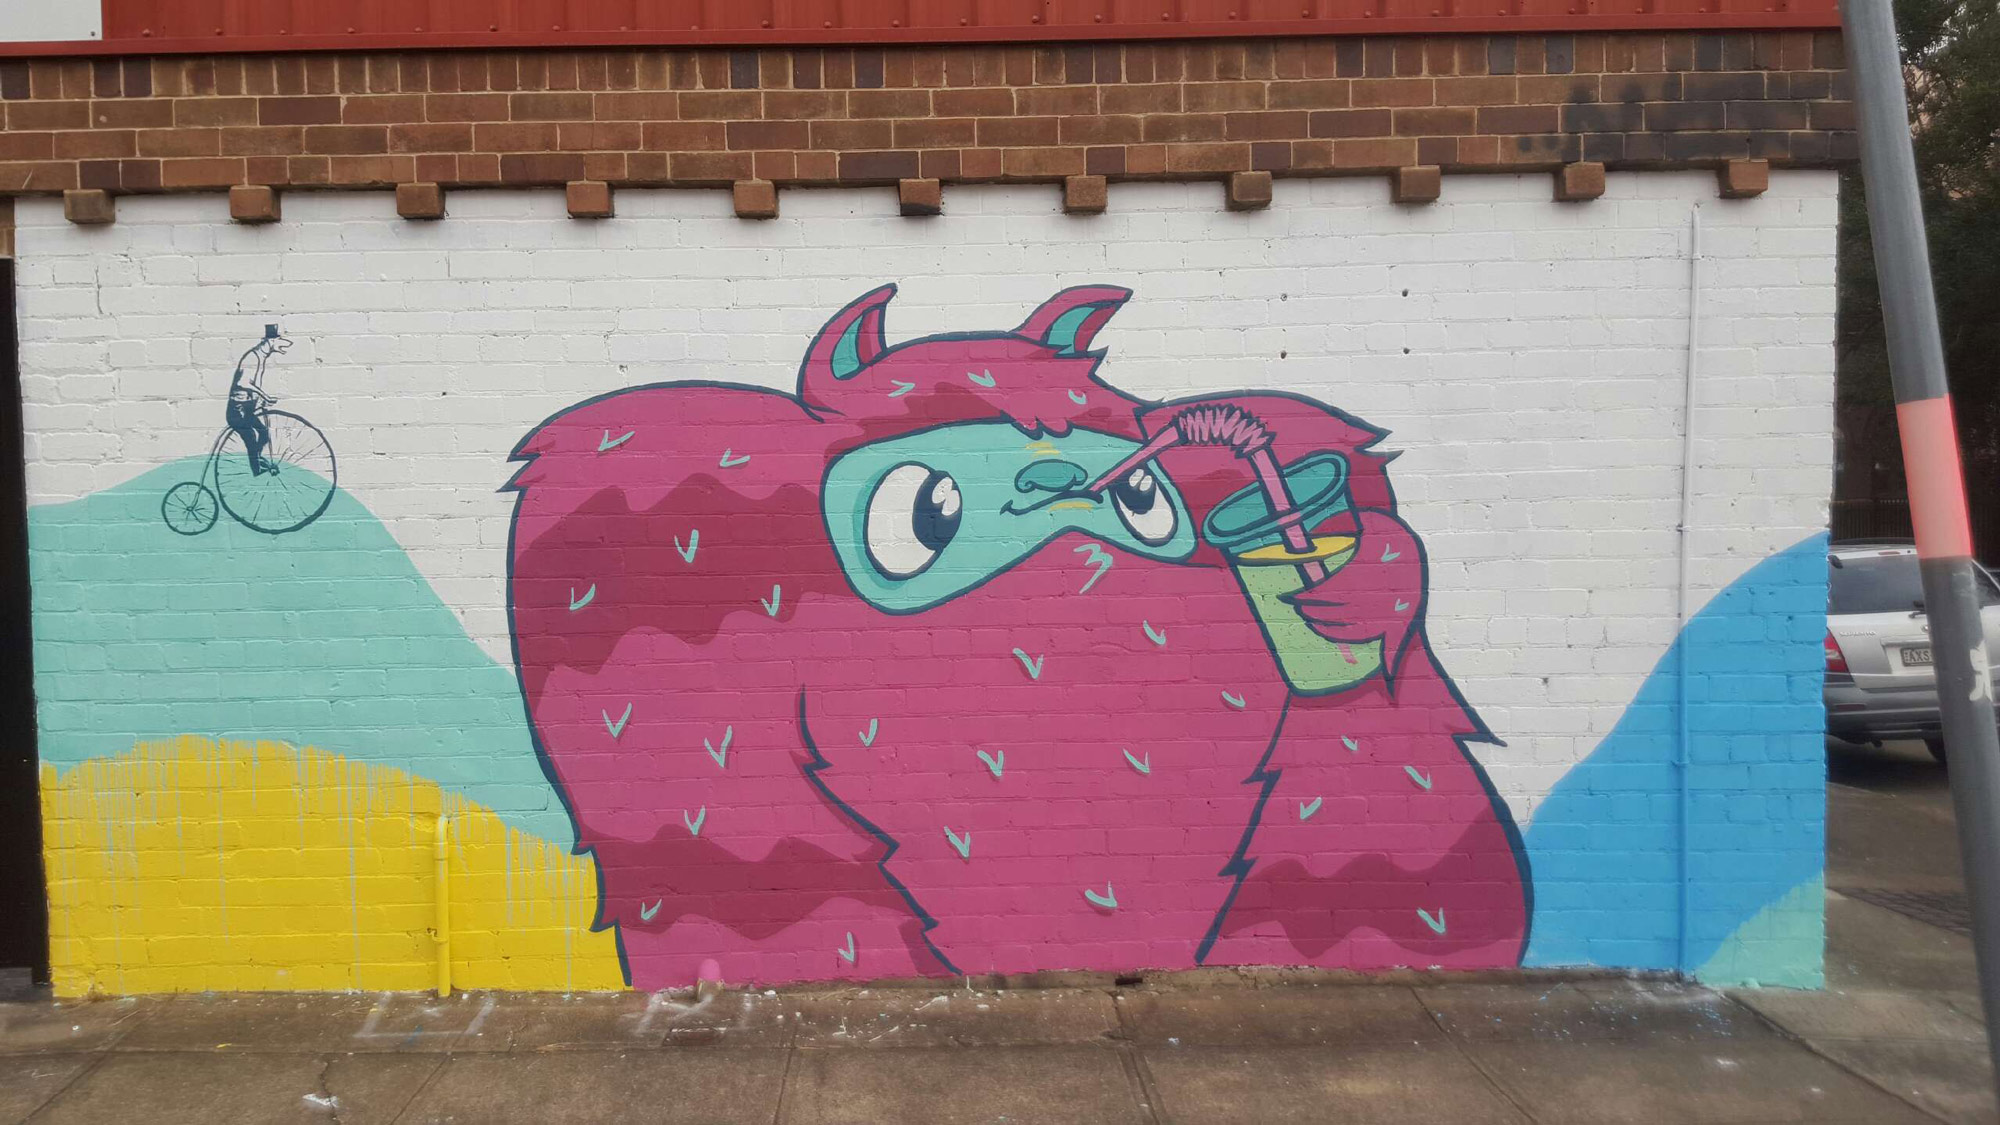 the-art-of-wall-marrickvillie-monster-mural-pink-guy